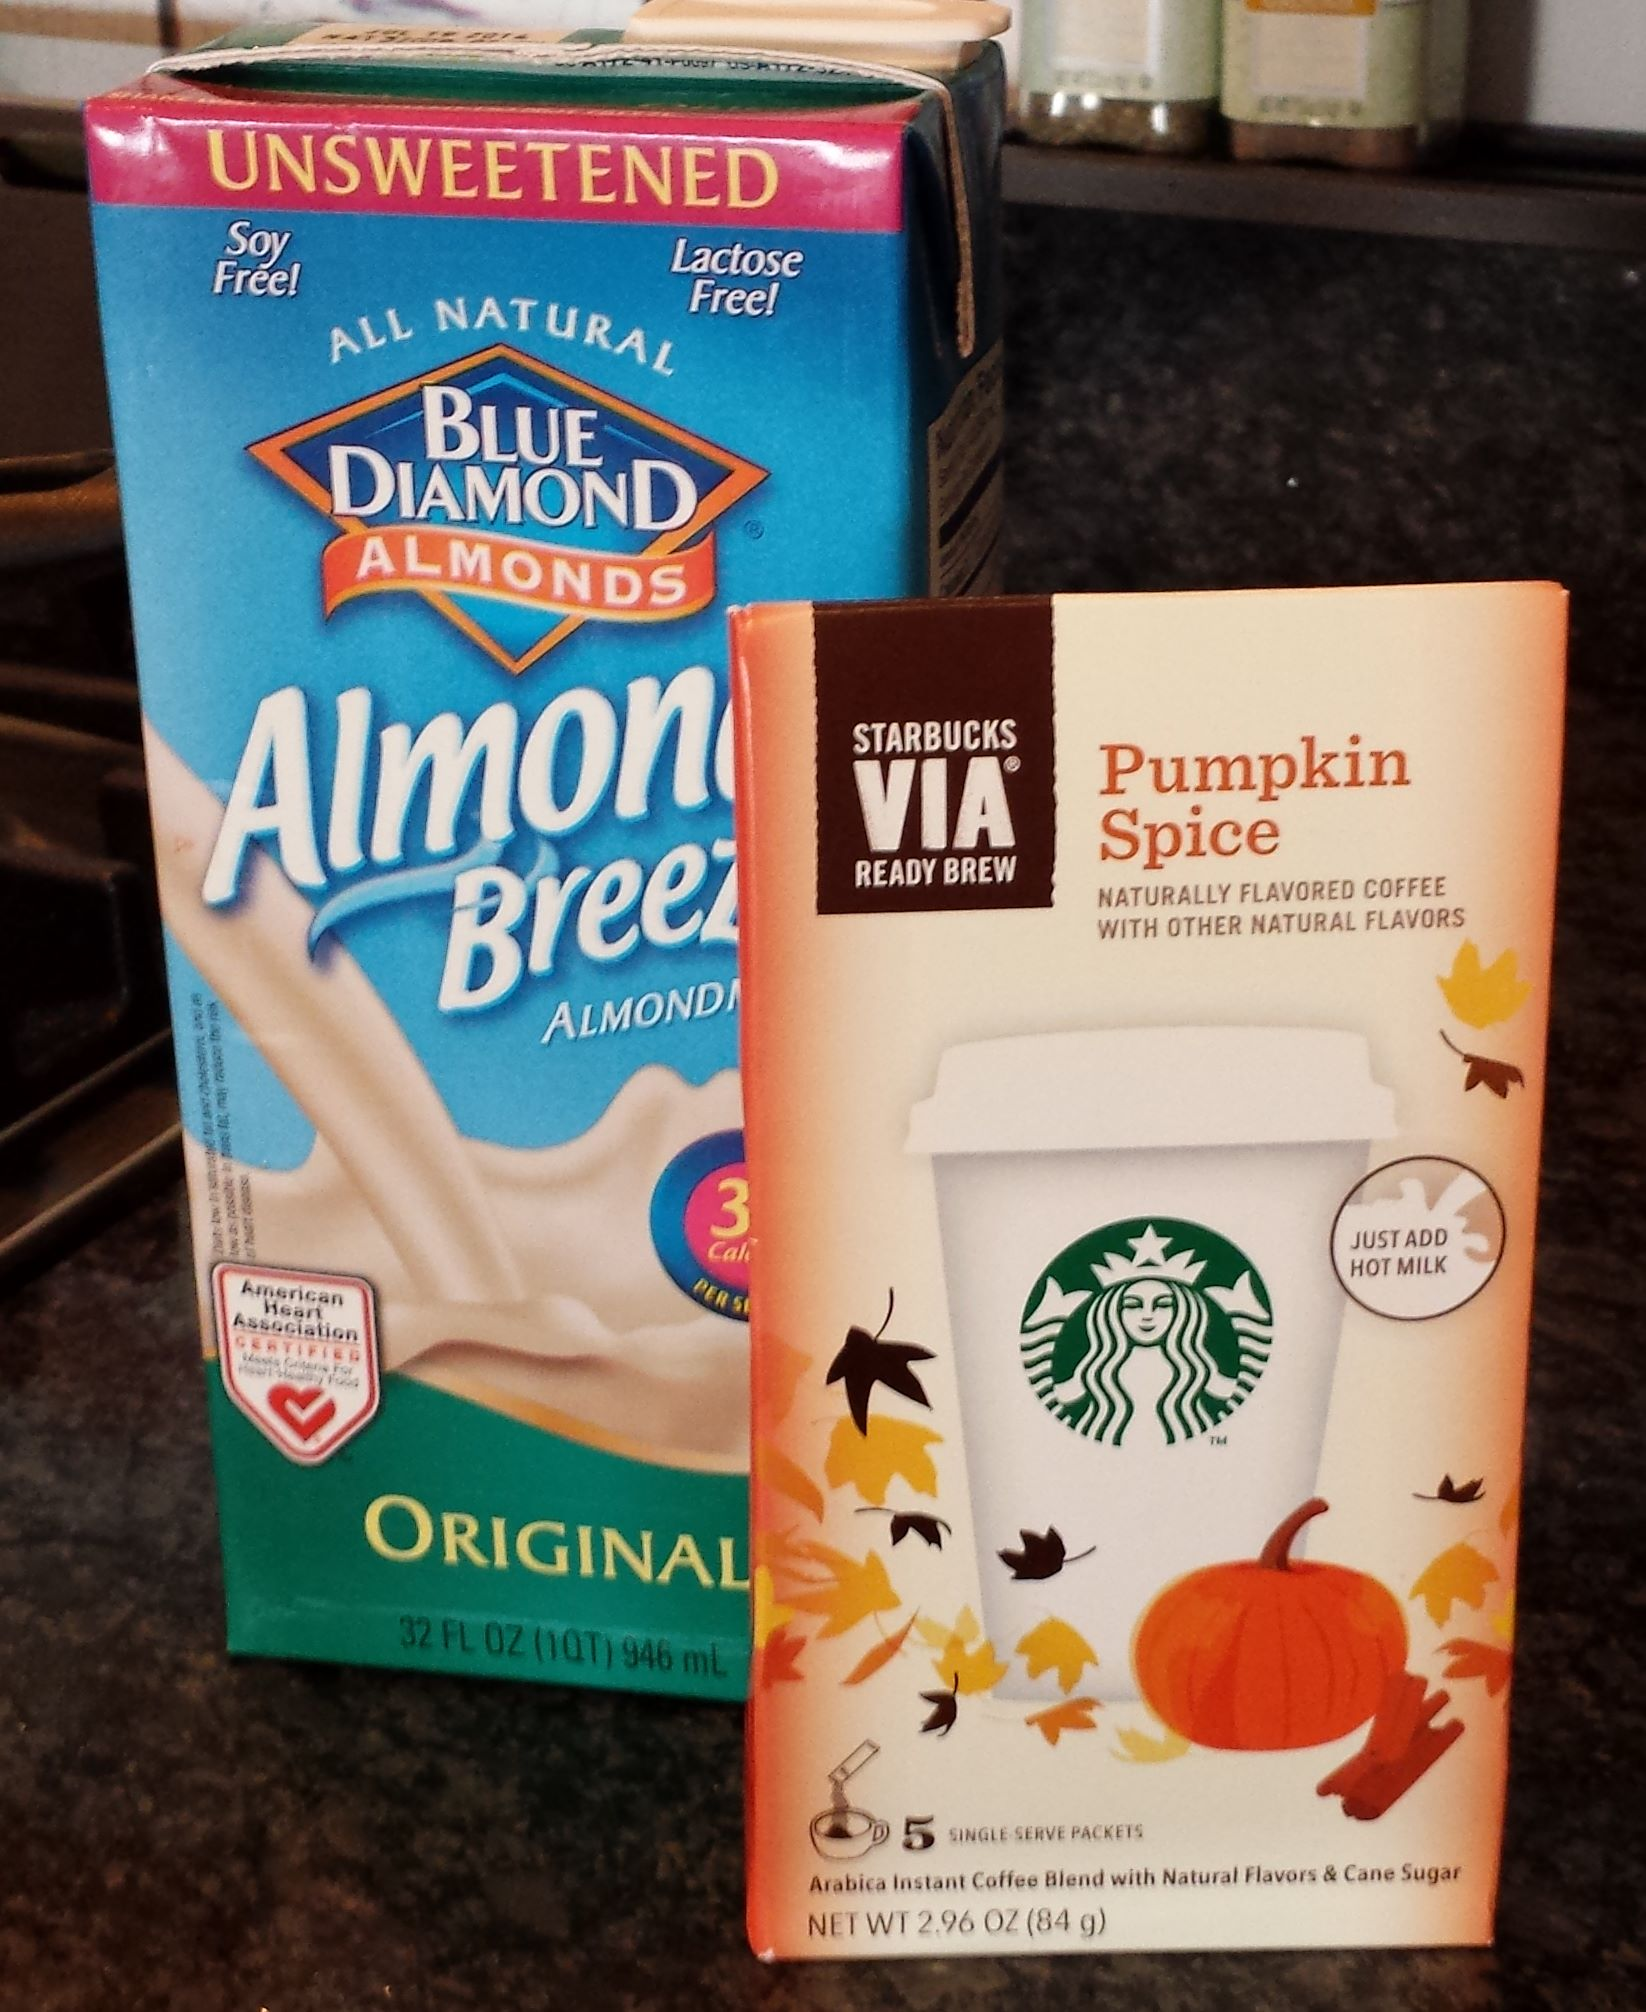 Starbucks VIA Pumpkin Spice: A Dairy Free At-home Drink